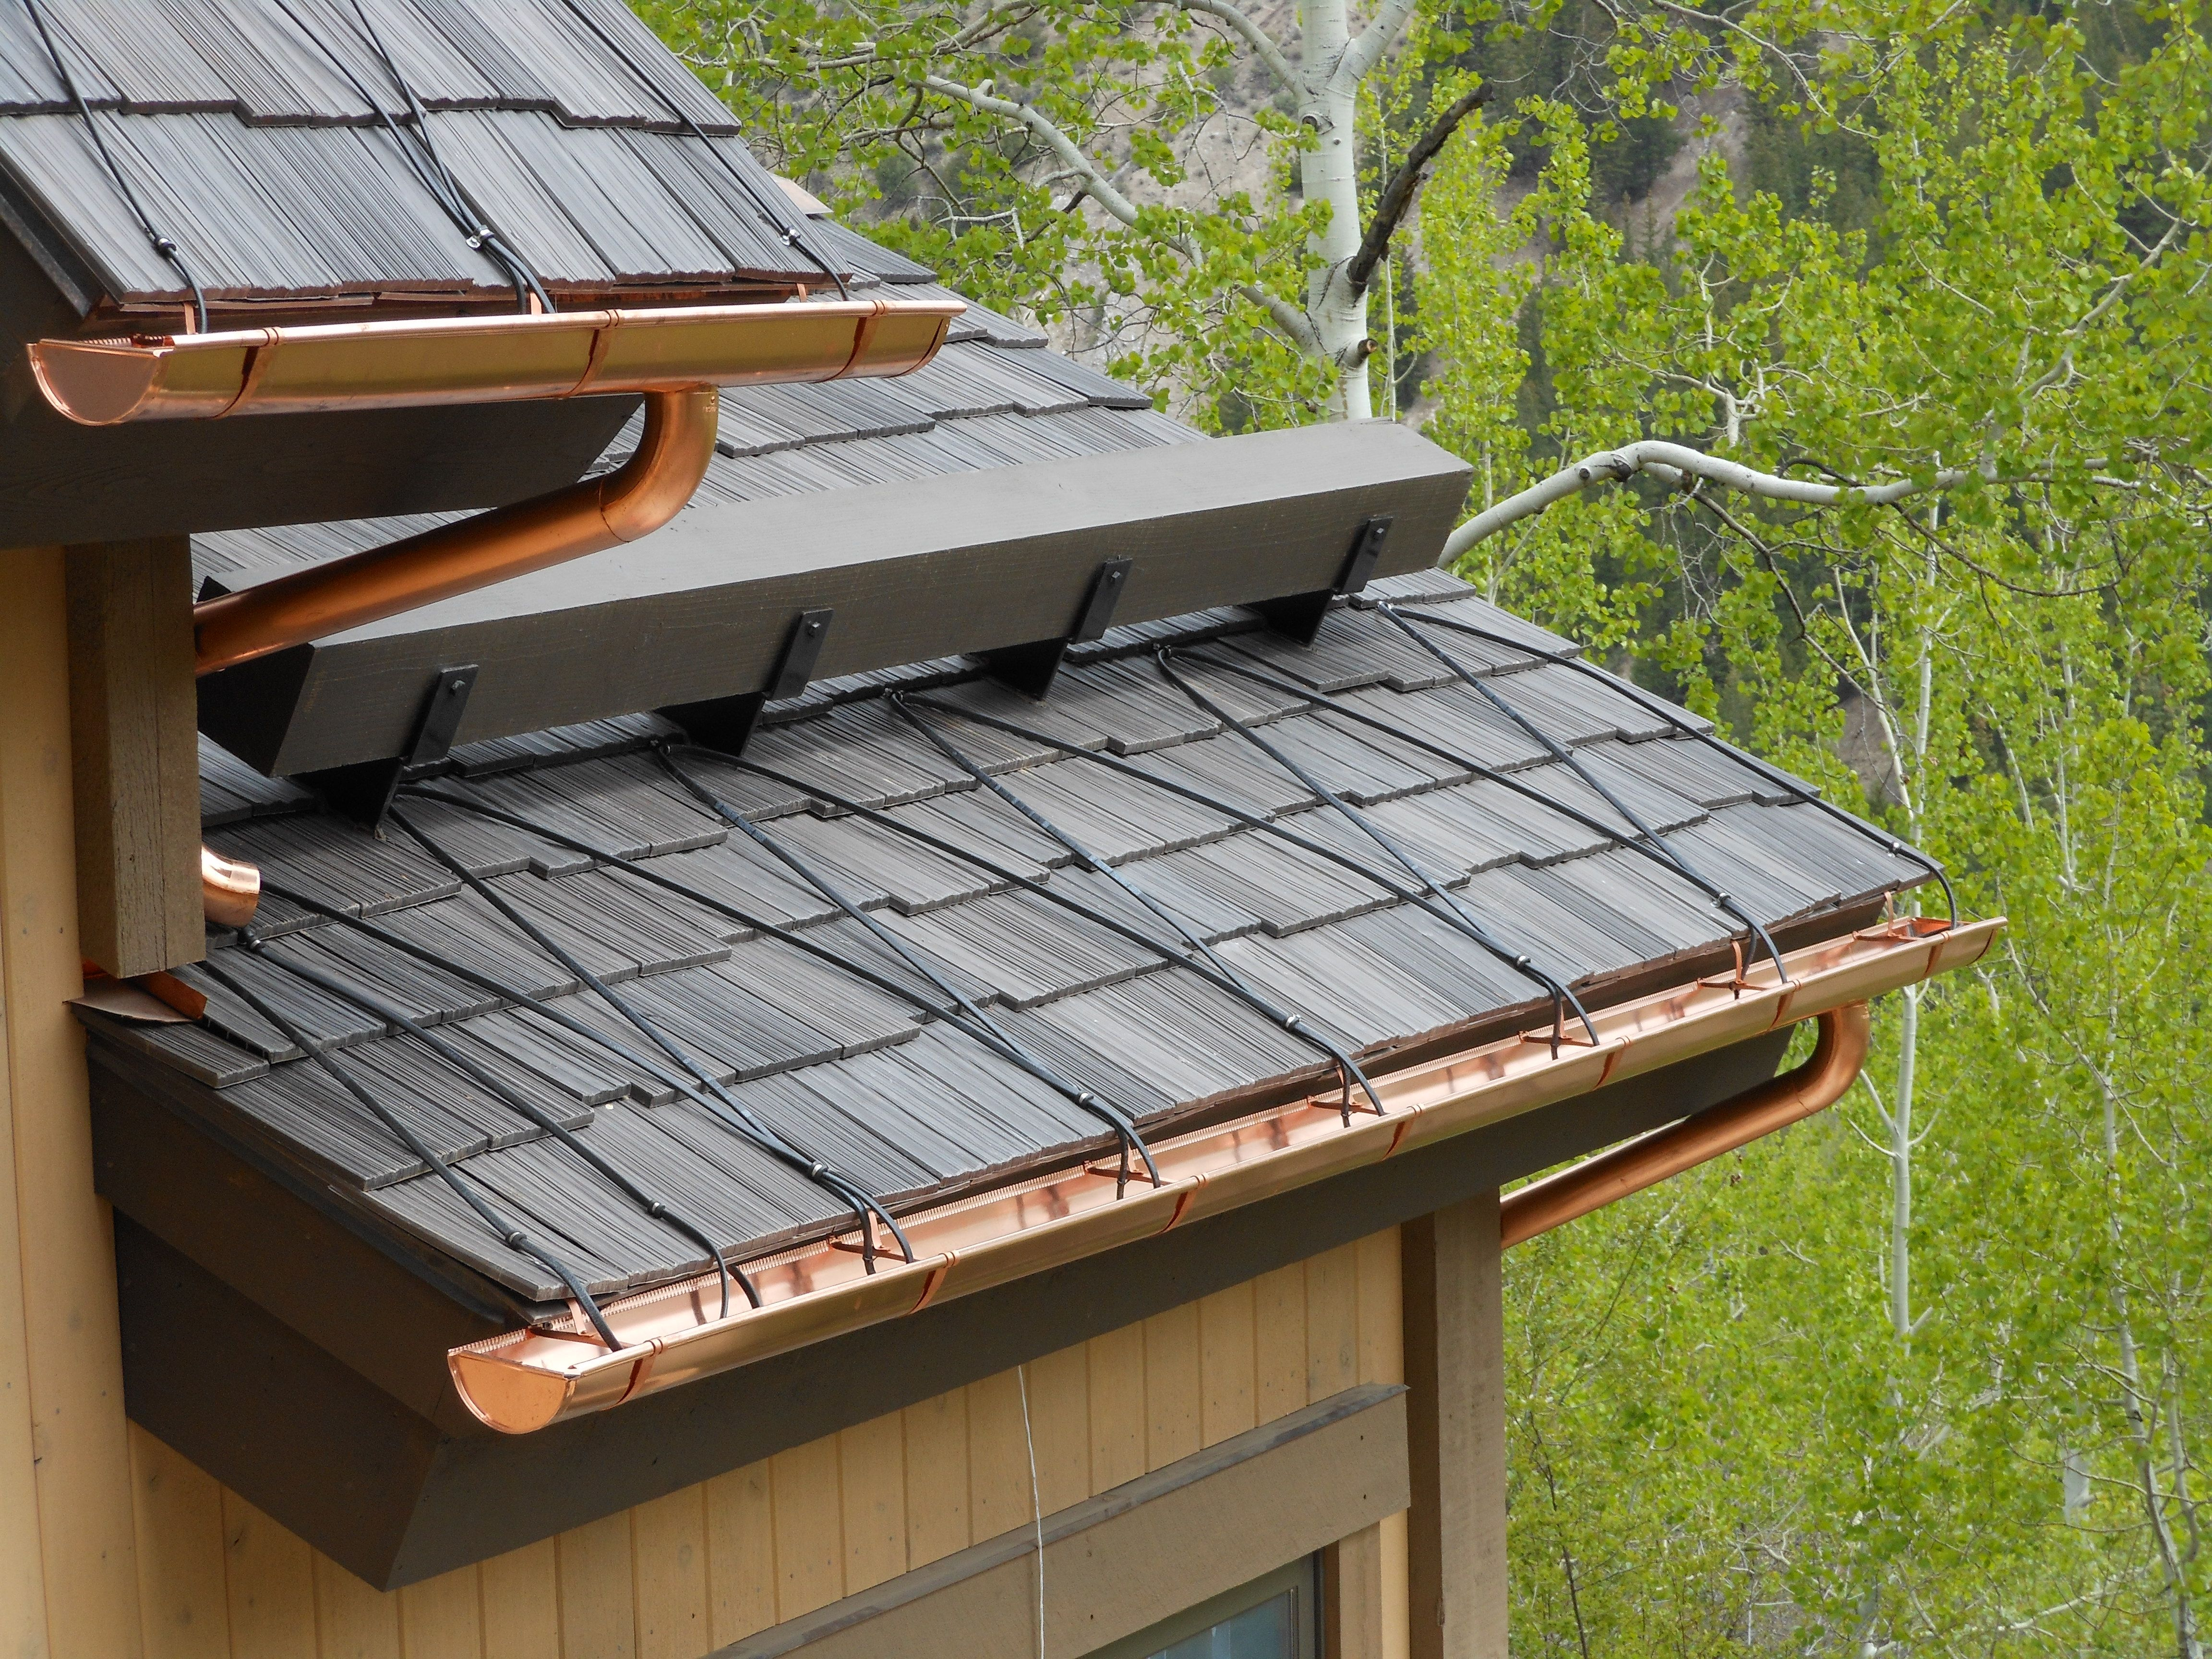 Close Up View Of The Synthetic Shake Roofing Tiles Cooper Gutters And Downspouts Solar Panels Roofing Coffee Table